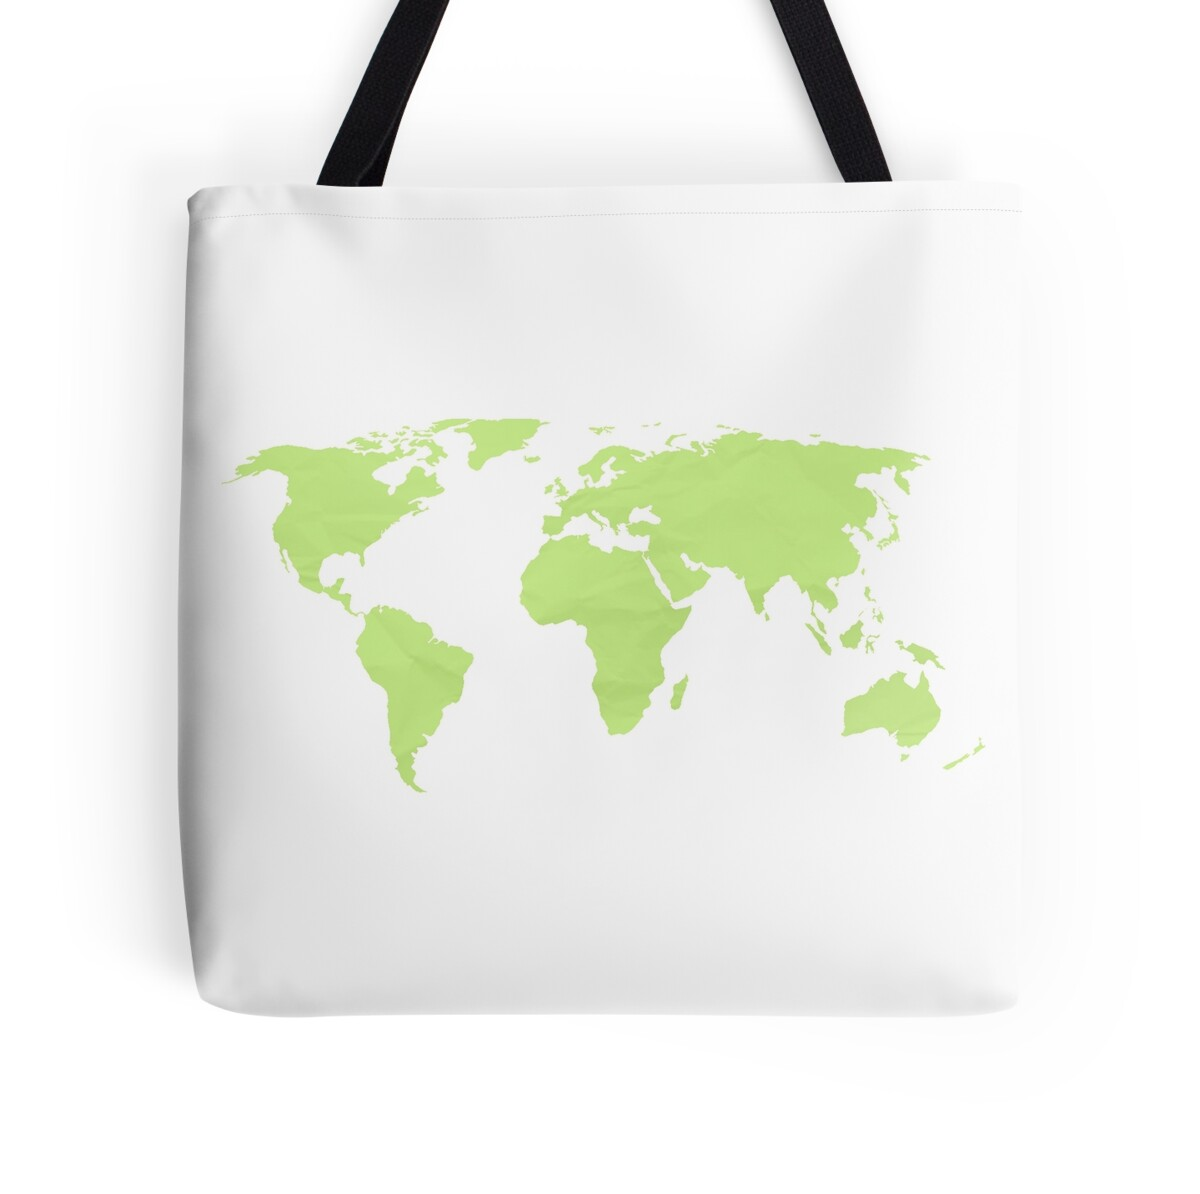 Simple World Map Flat. Simple Green World Map by Leah Biernacki  Tote Bags Redbubble